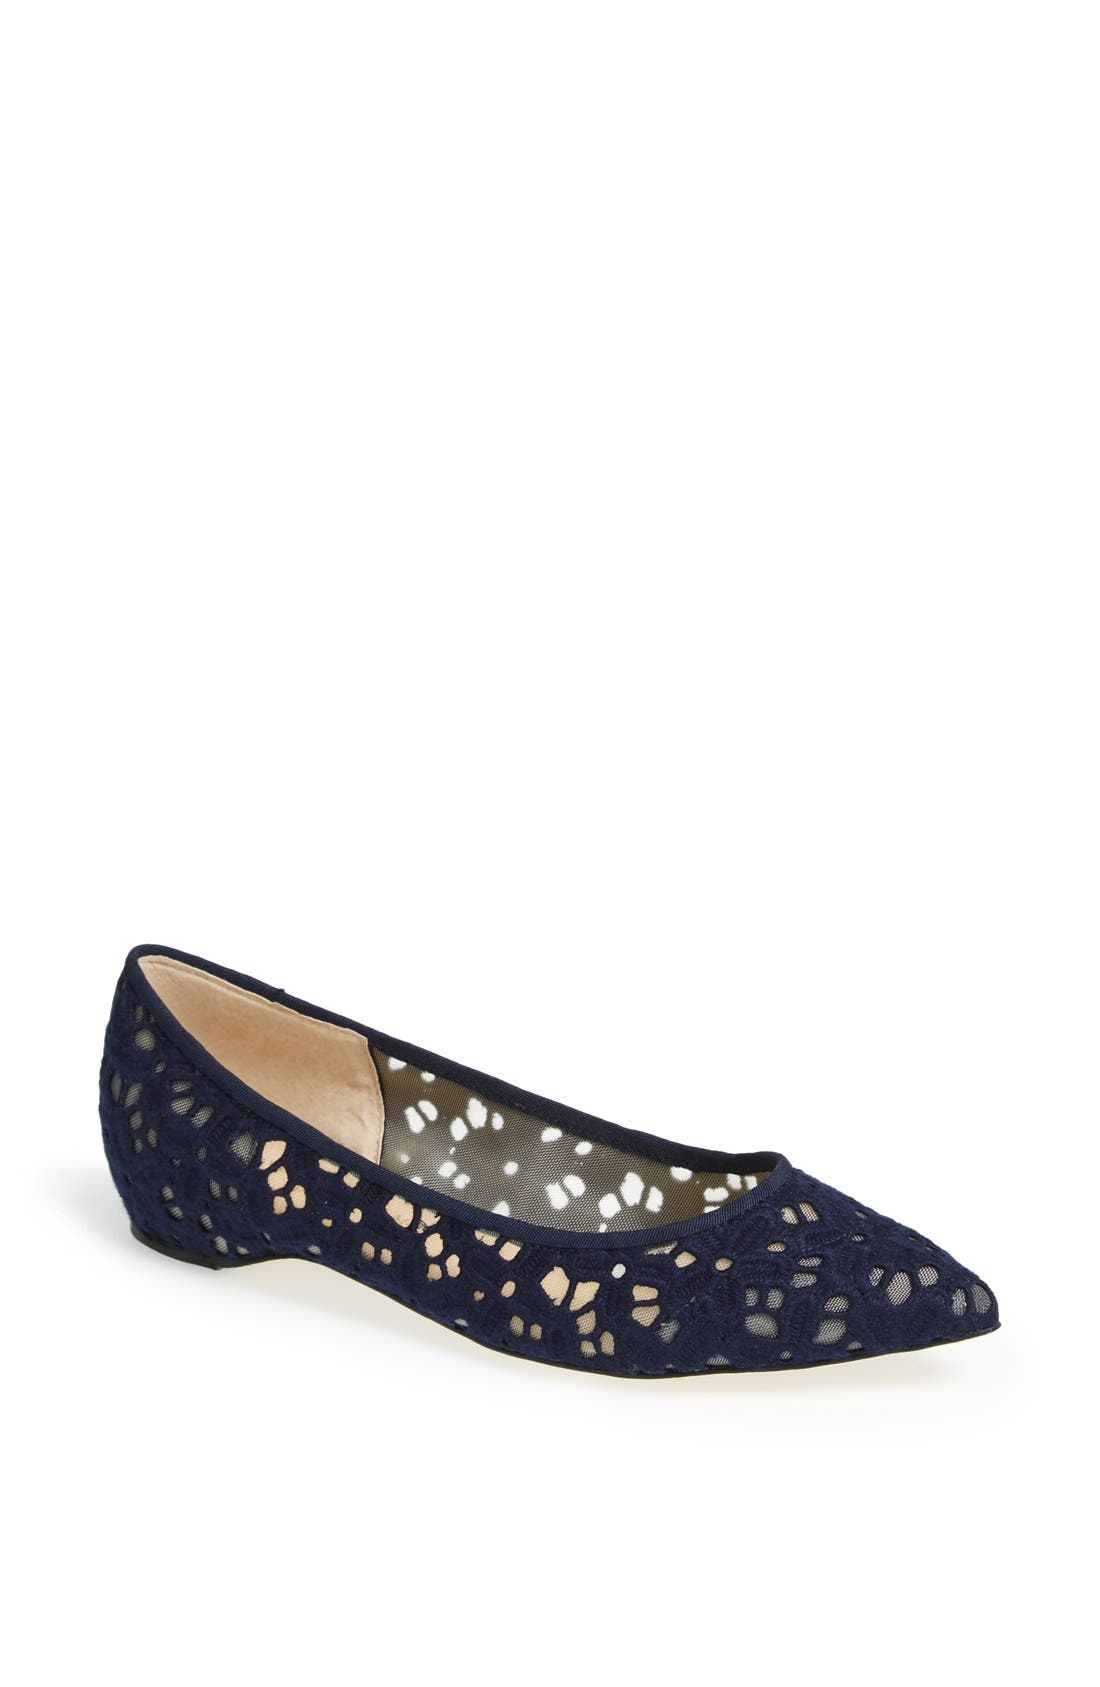 Alternate Image 1 Selected - Ivanka Trump 'Chic3' Flat